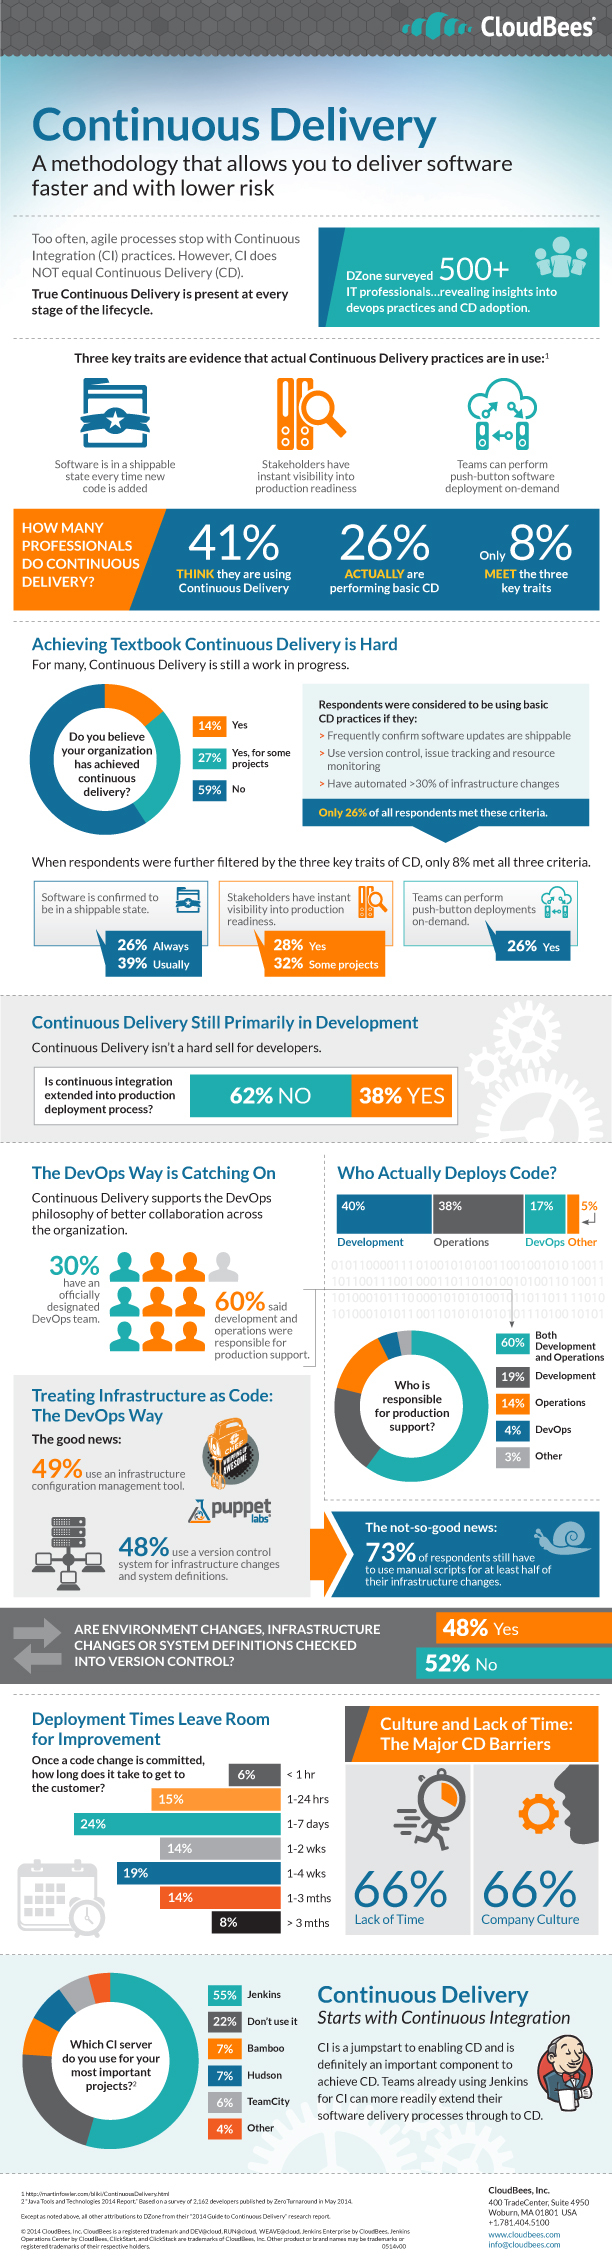 CloudBees Brings Continuous Delivery with Jenkins to Enterprises  (Graphic: Business Wire)